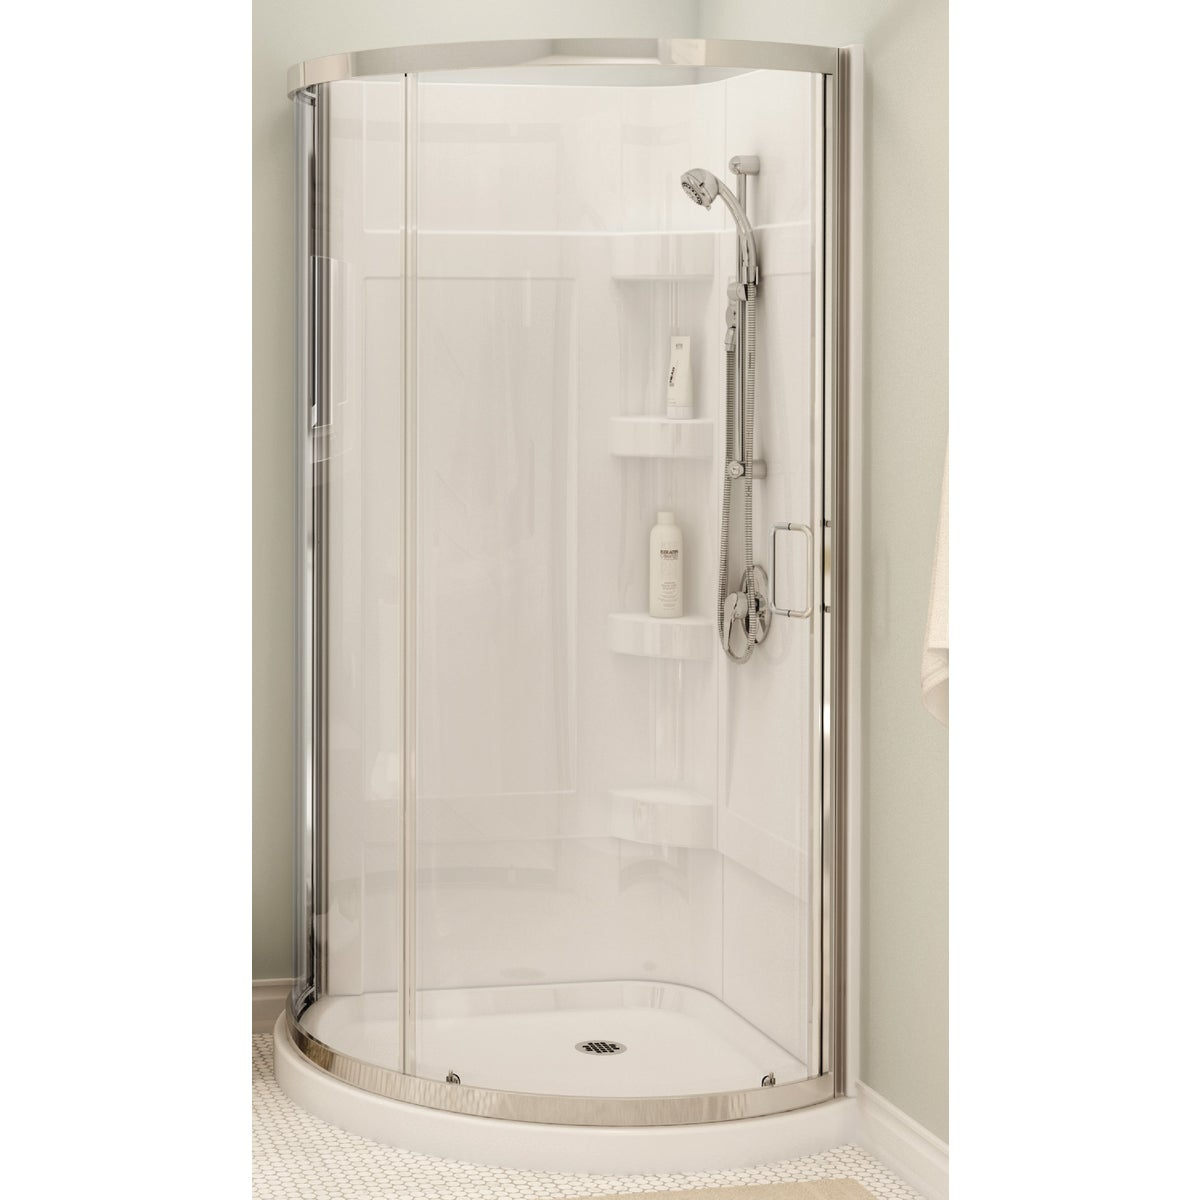 WHITE ROUND SHOWER - 300001-001-102 by Maax Bath